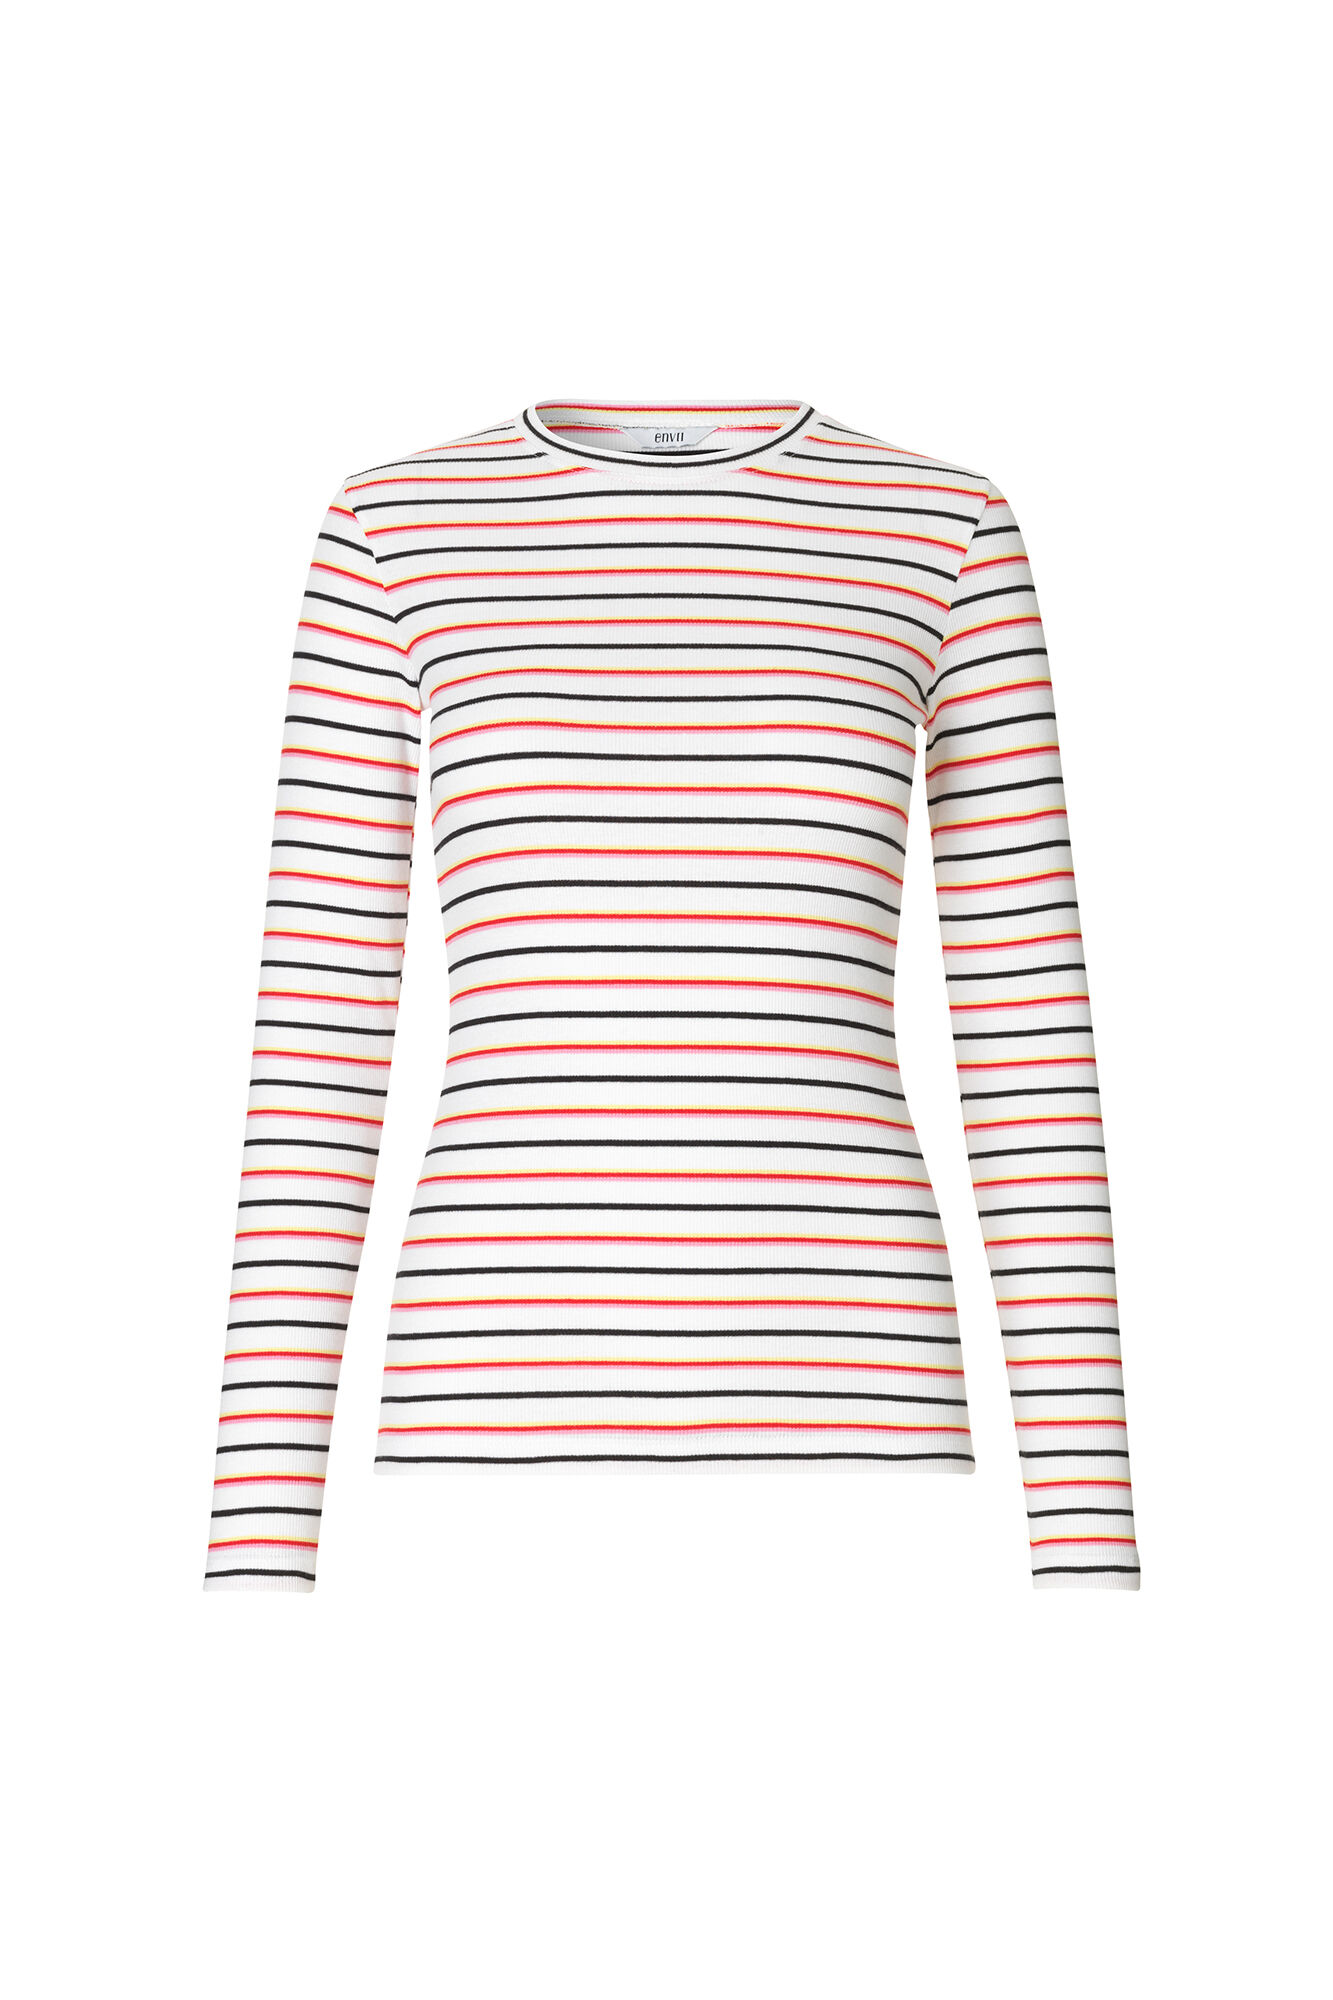 ENALLY LS O-N TEE MULTI 5892, MULTI STRIPE